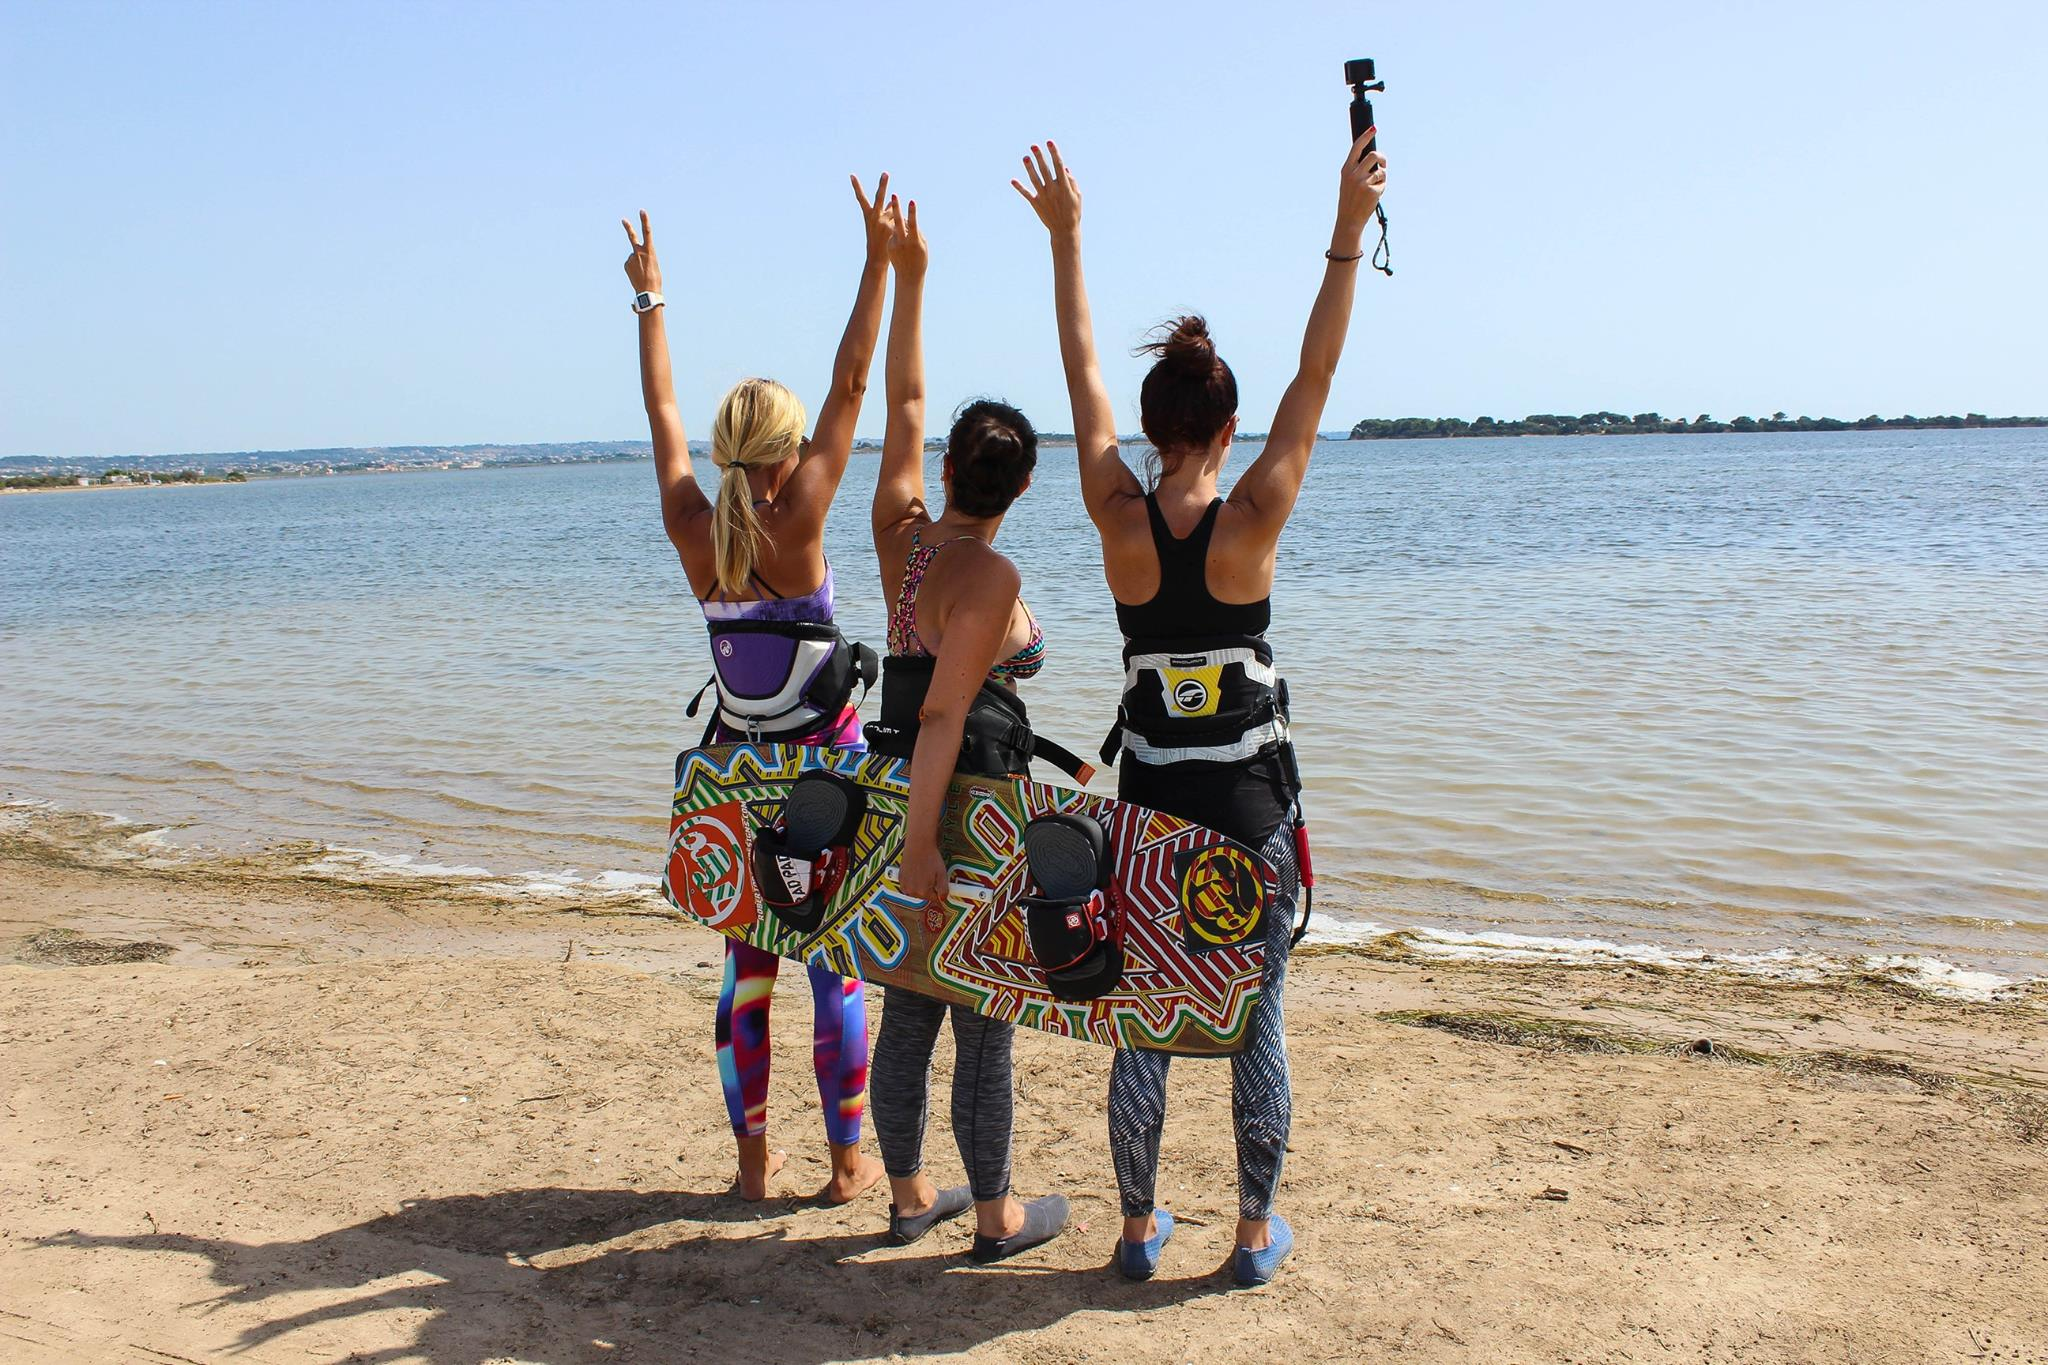 Learn to kitesurf with us